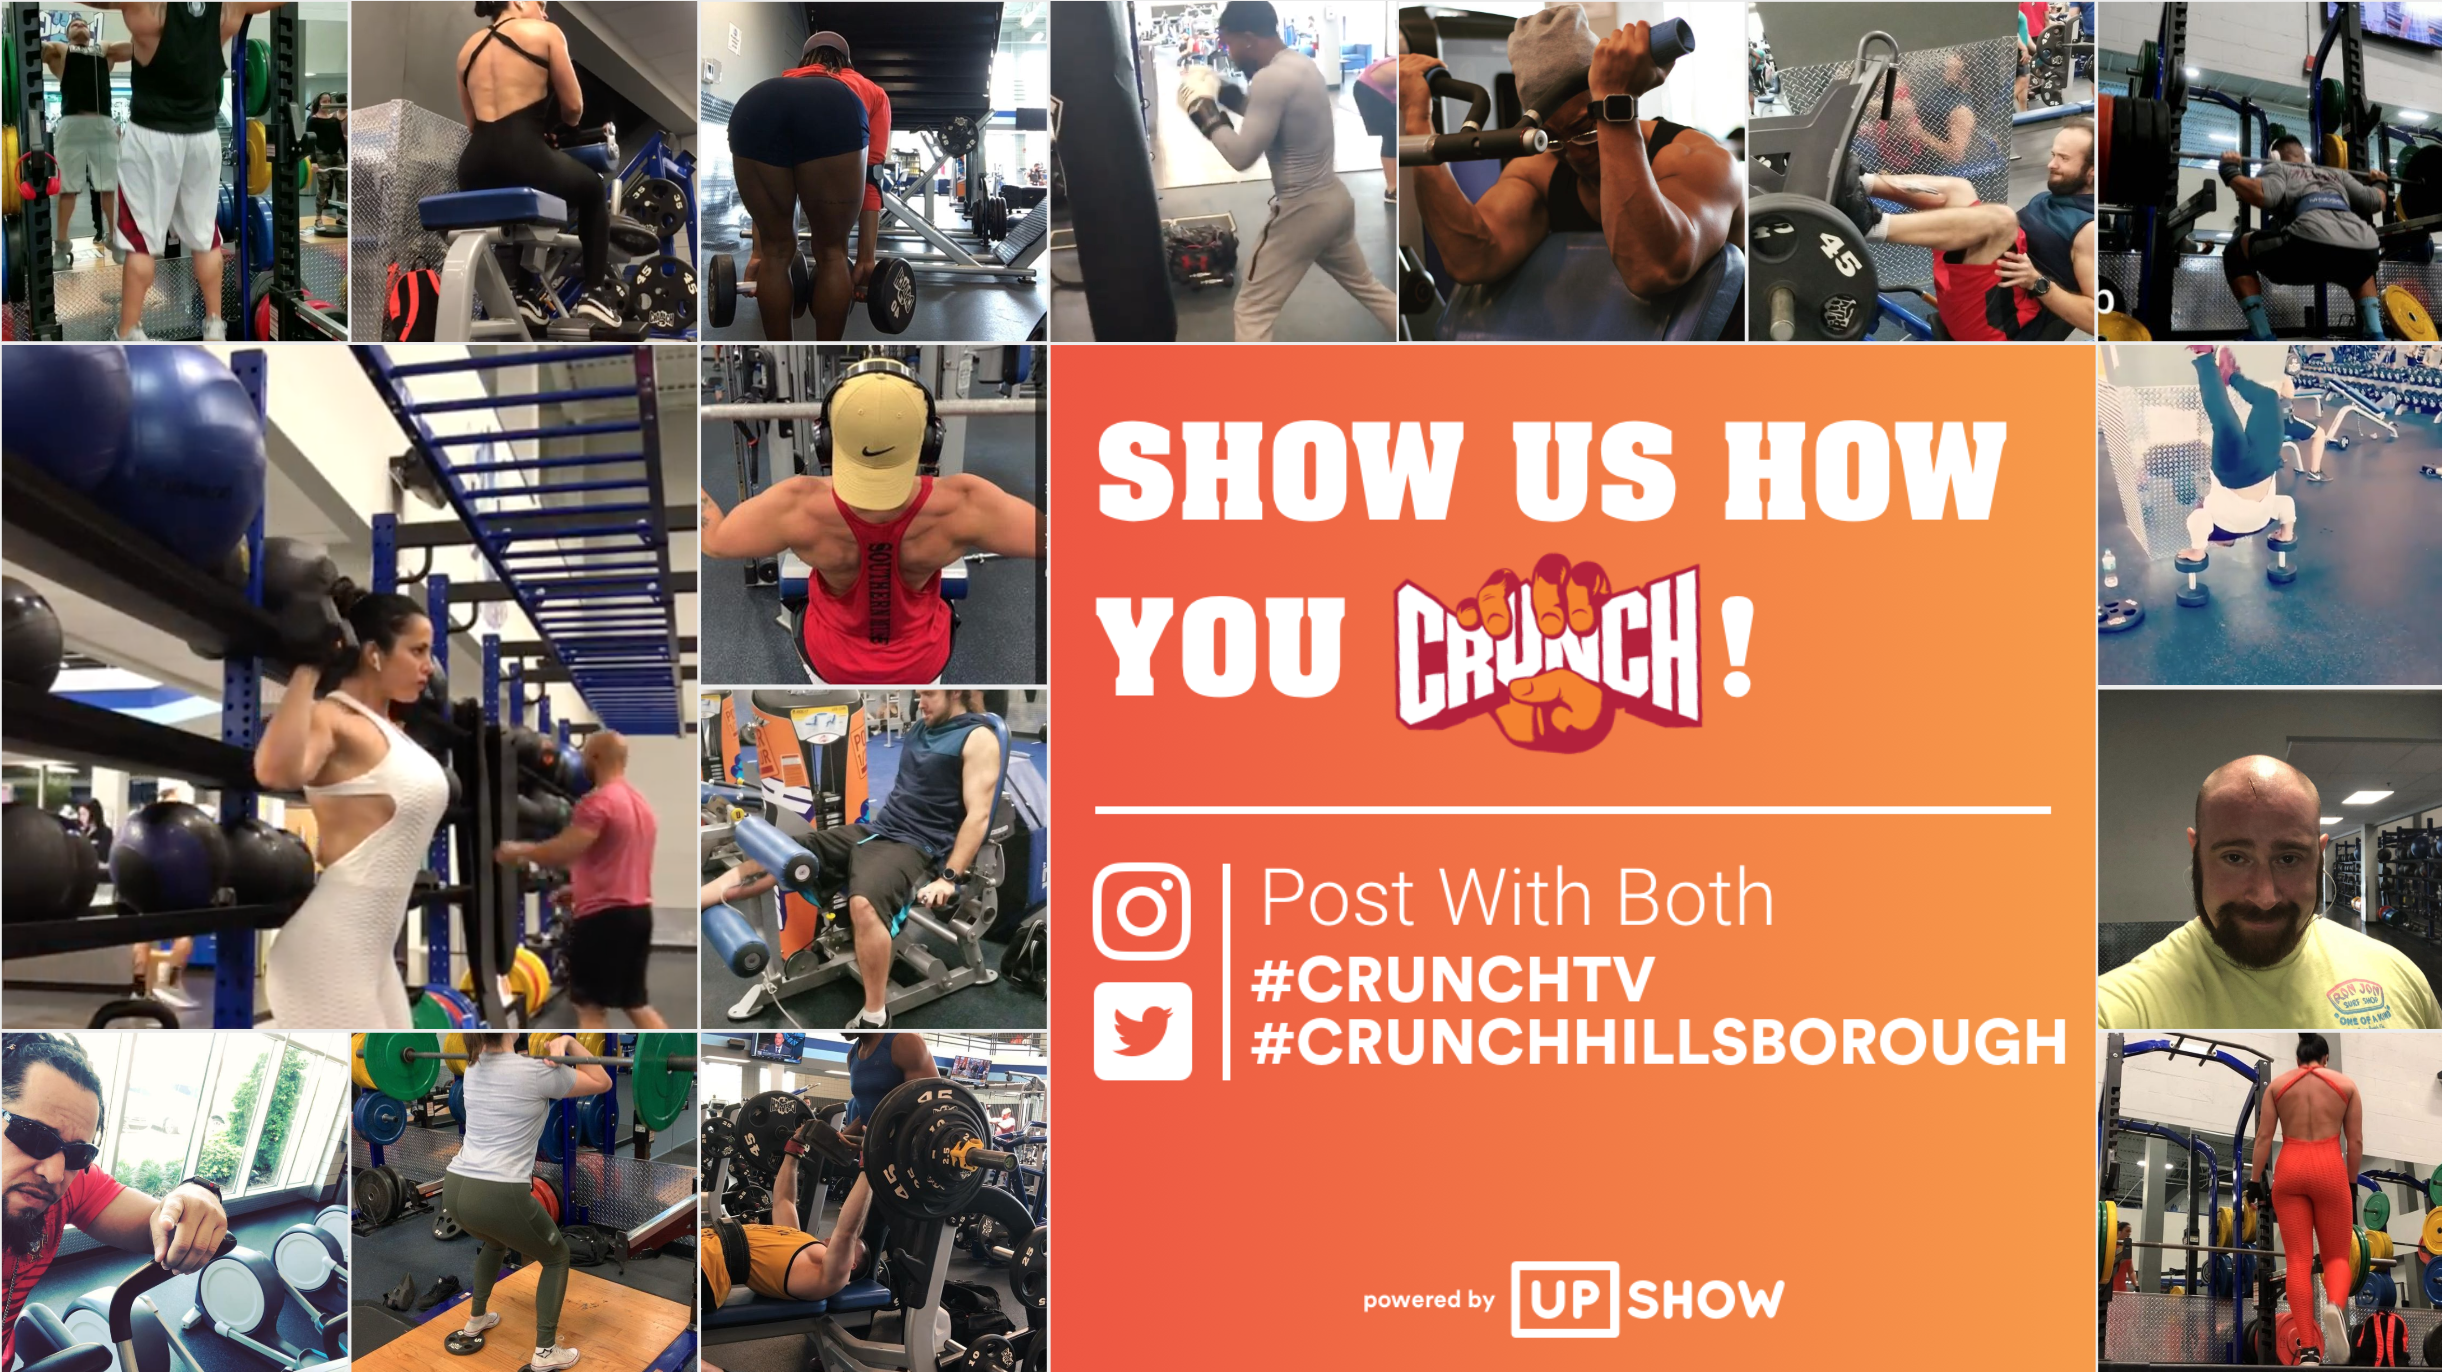 Engage members at your fitness club by transforming your TVs into social media displays.